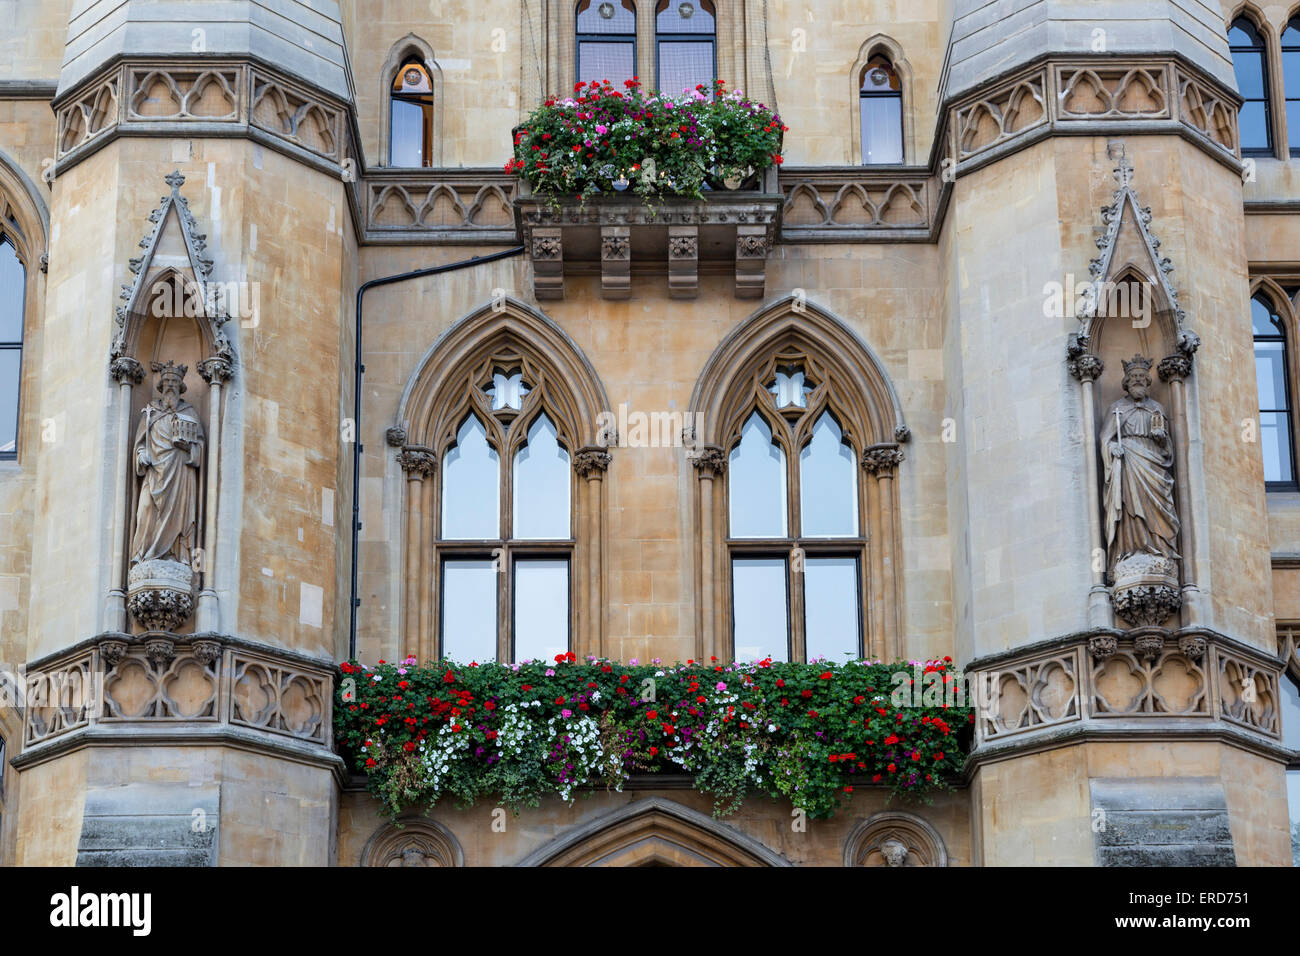 UK, England, London.  Statues above Entrance to Dean's Yard, Westminster. - Stock Image